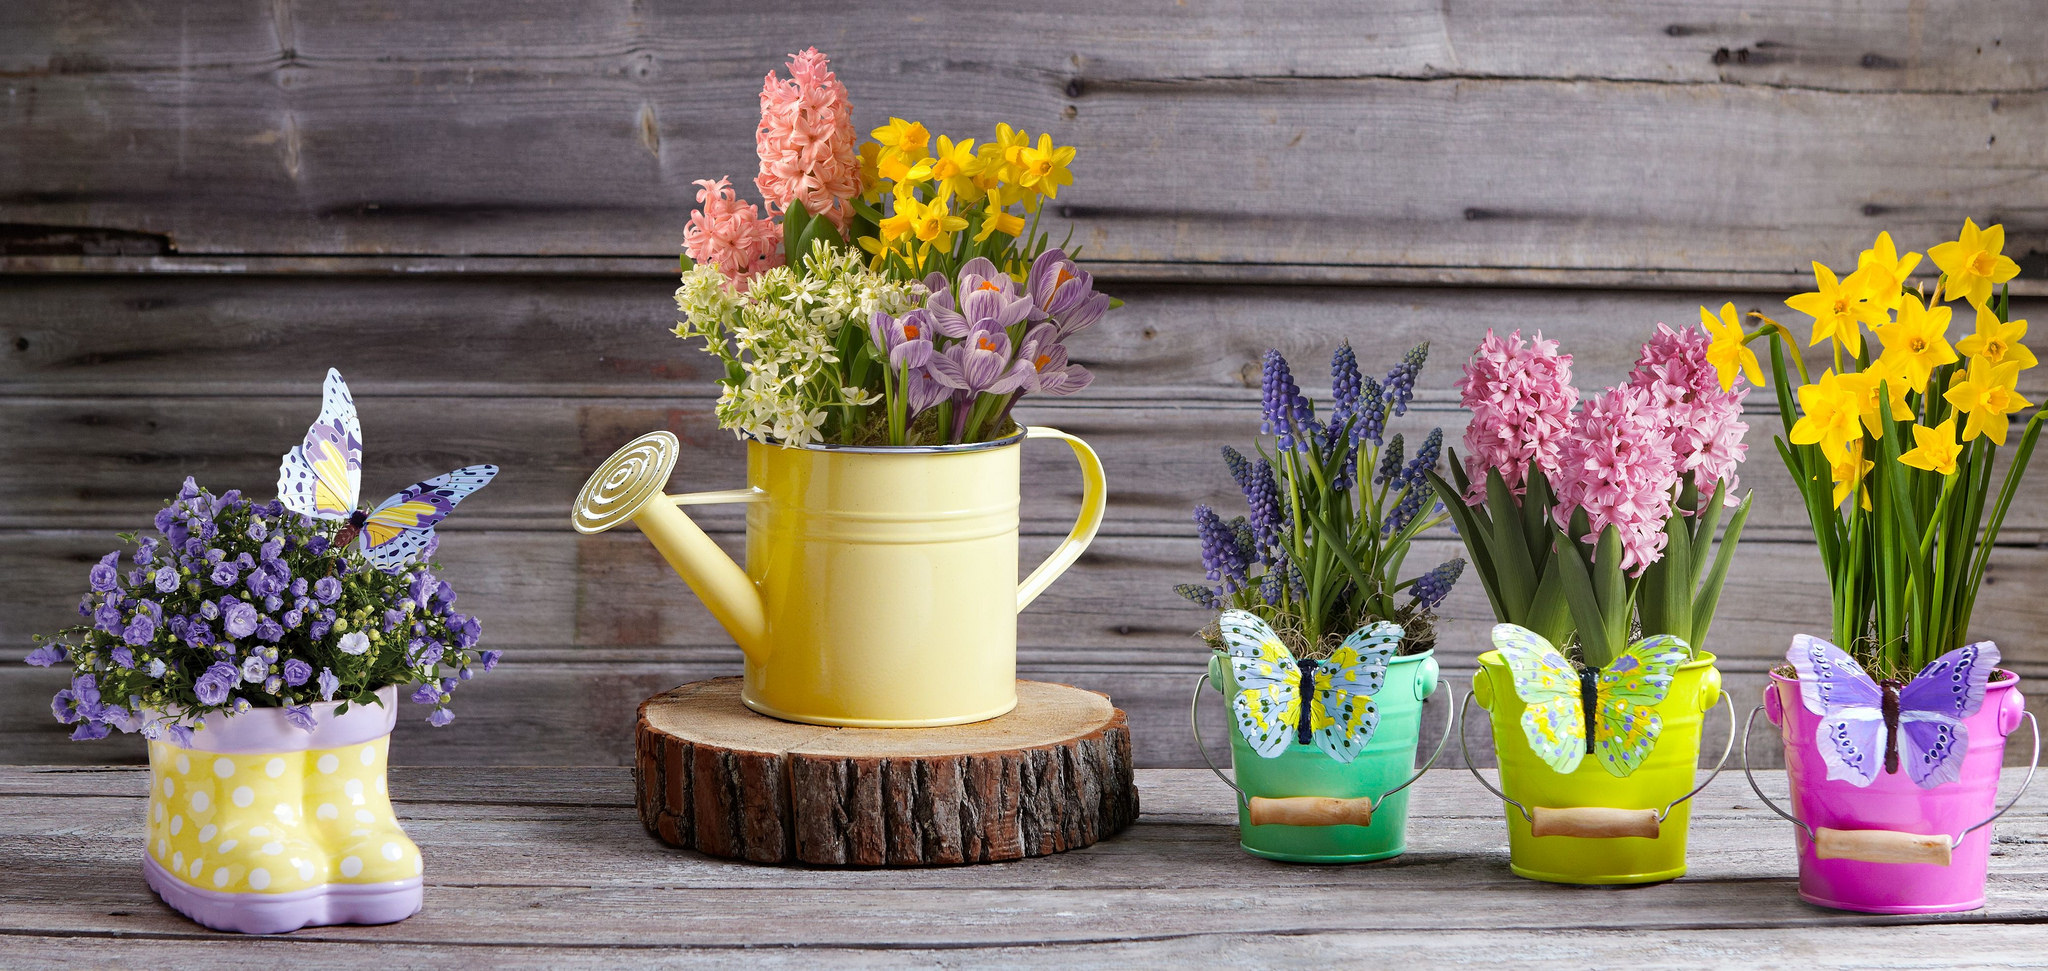 How to make the most of a small garden space 7 uncommon indoor plants